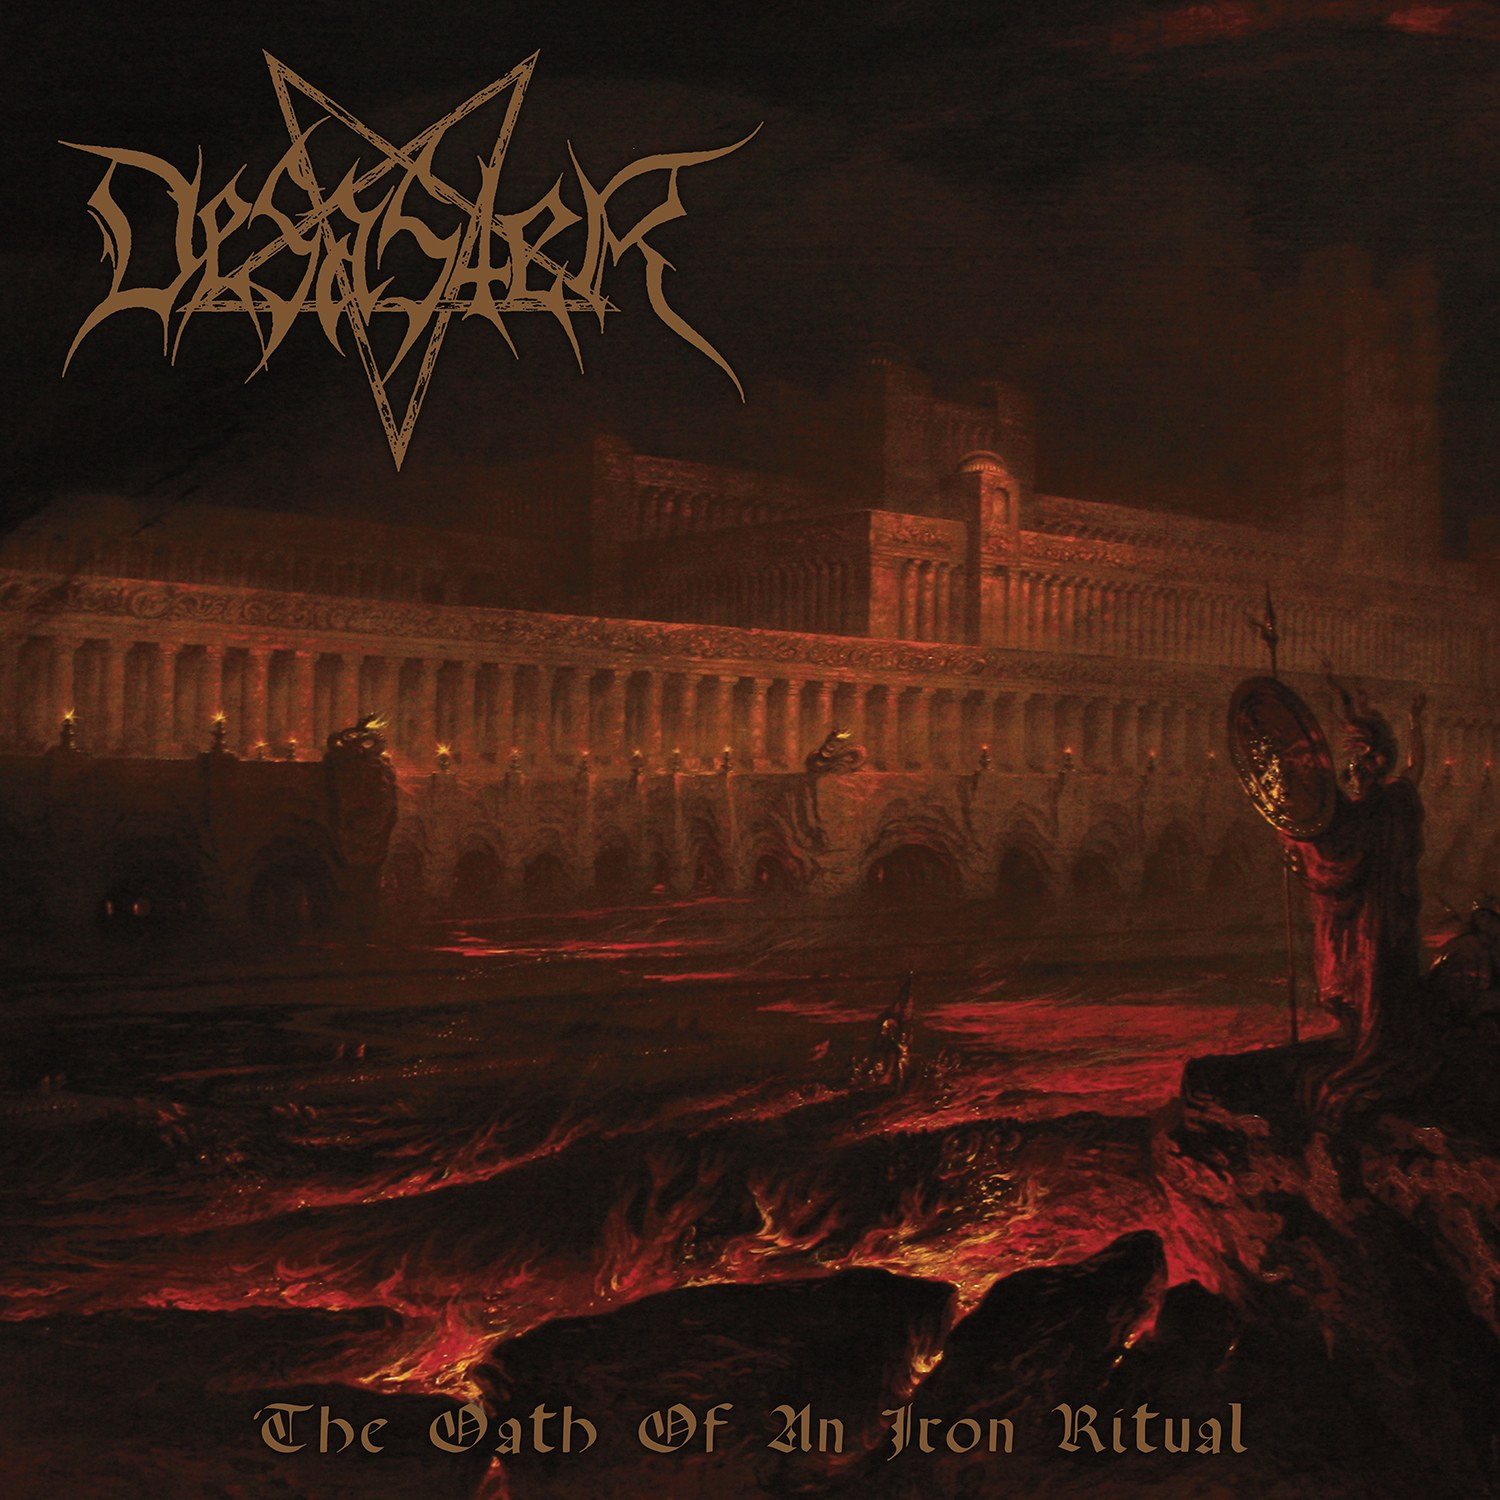 Review for Desaster - The Oath of an Iron Ritual